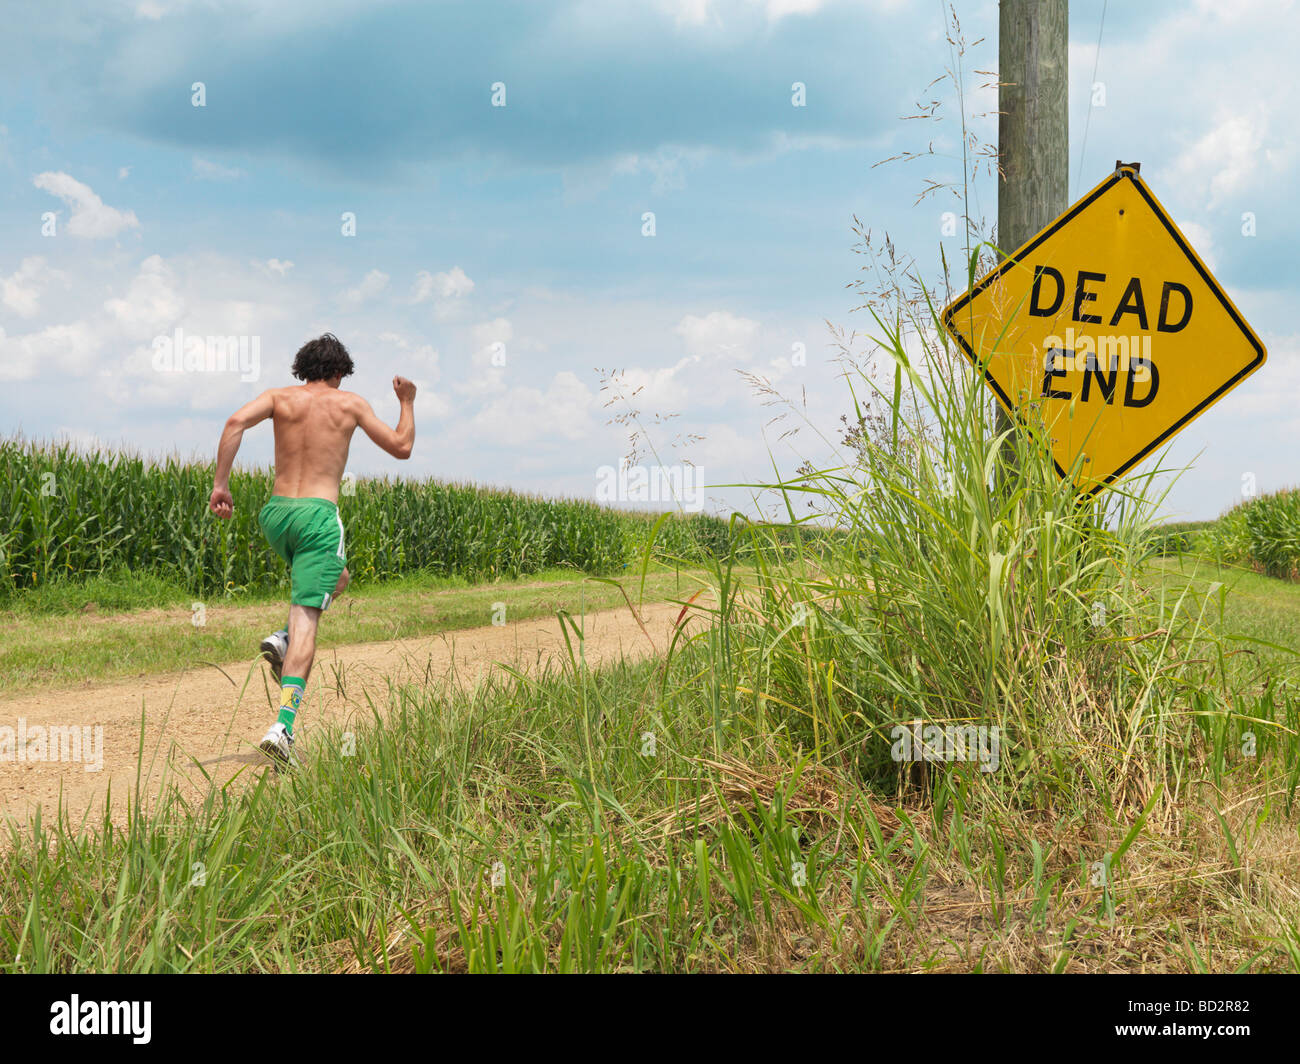 Man running along dirt road - Stock Image